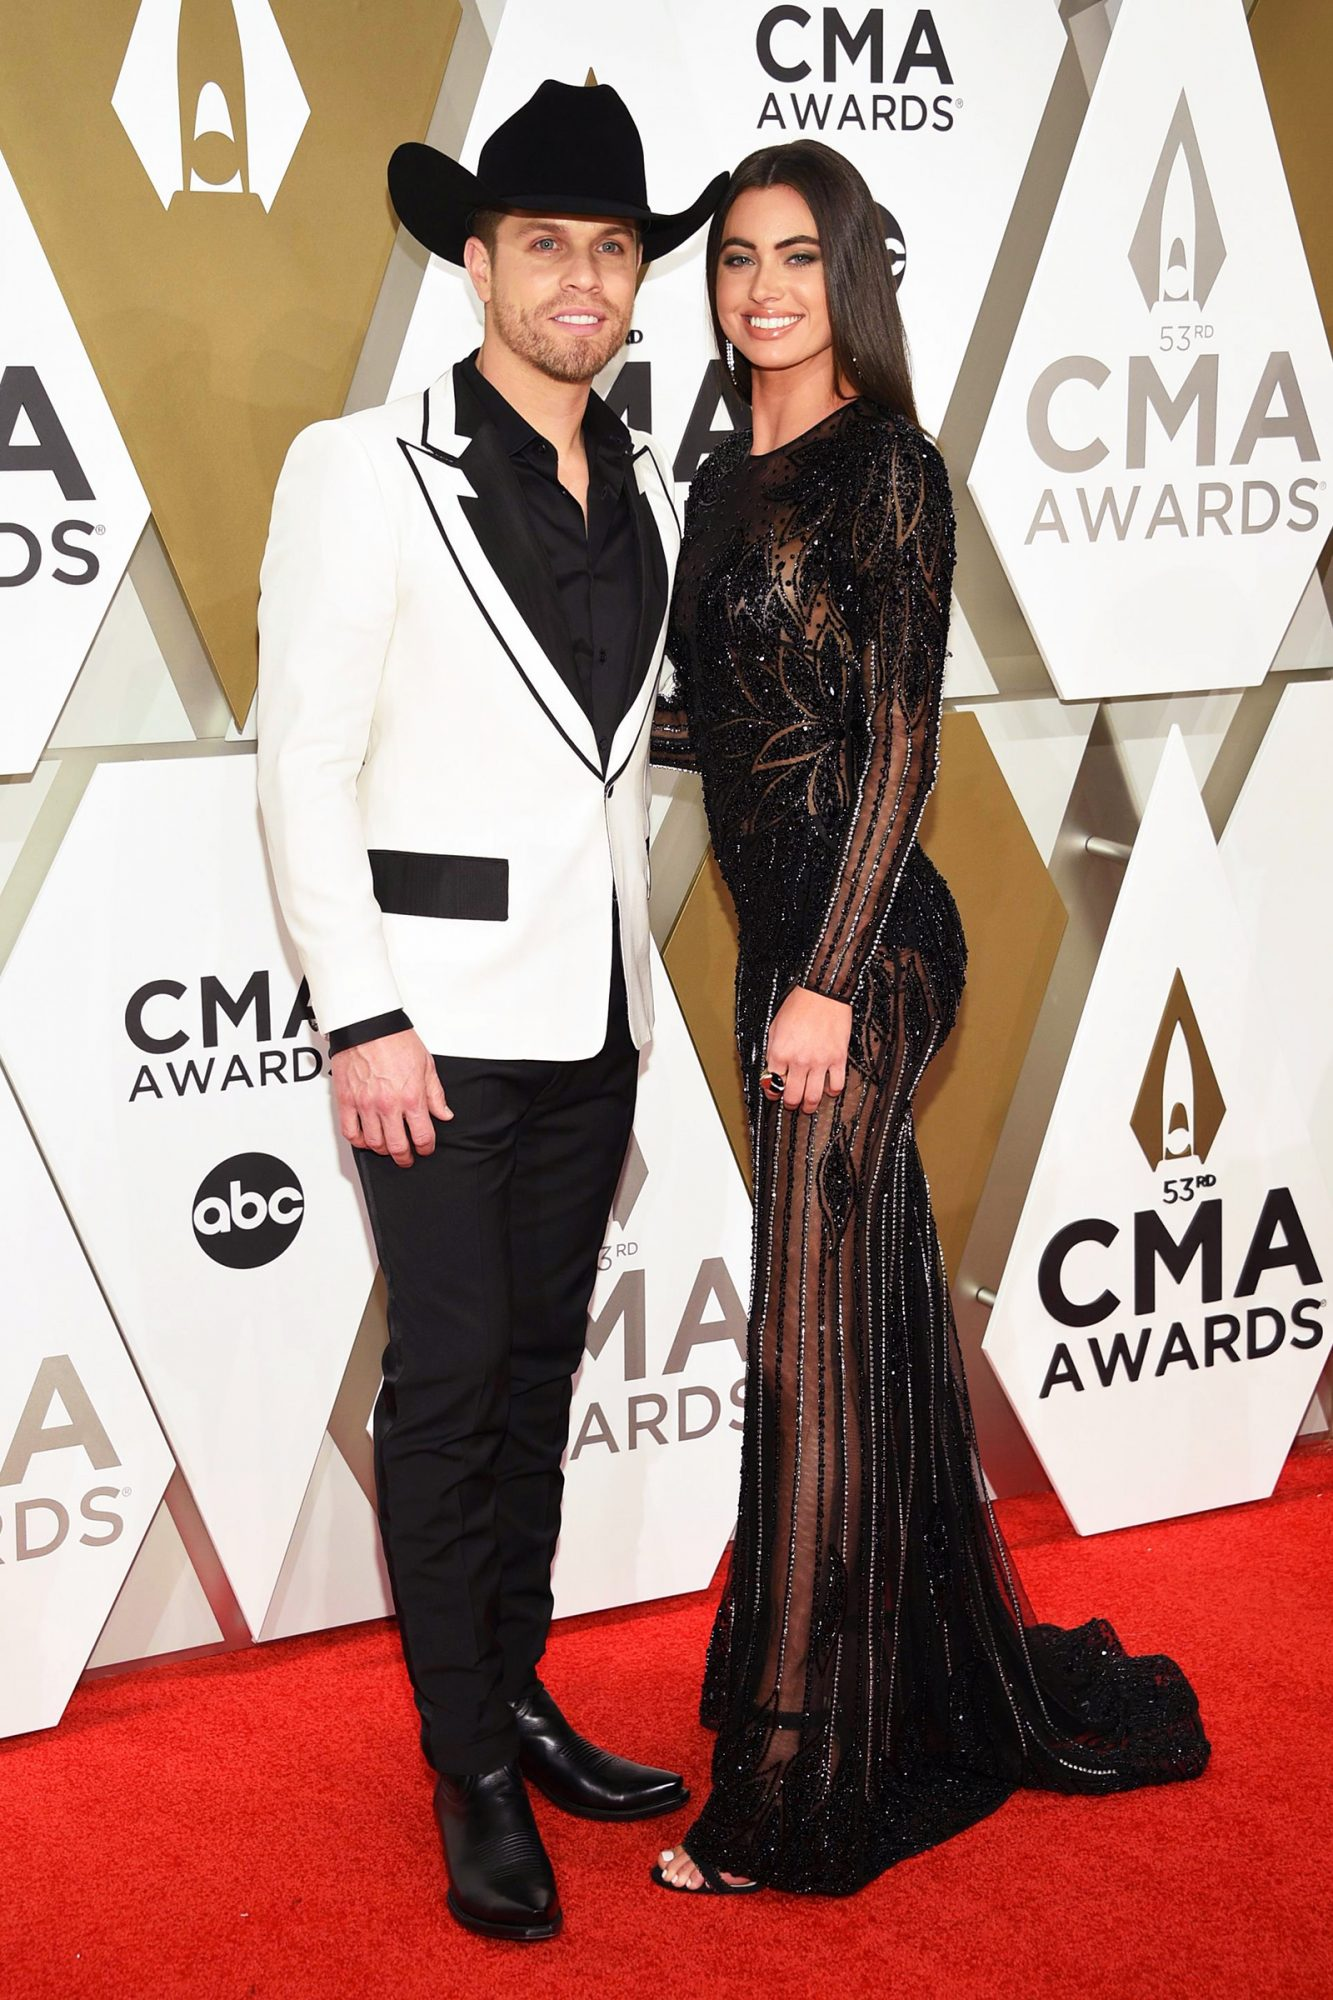 Dustin Lynch, left, and Kelli Seymour arrive at the 53rd annual CMA Awards at Bridgestone Arena, in Nashville, Tenn 53rd Annual CMA Awards